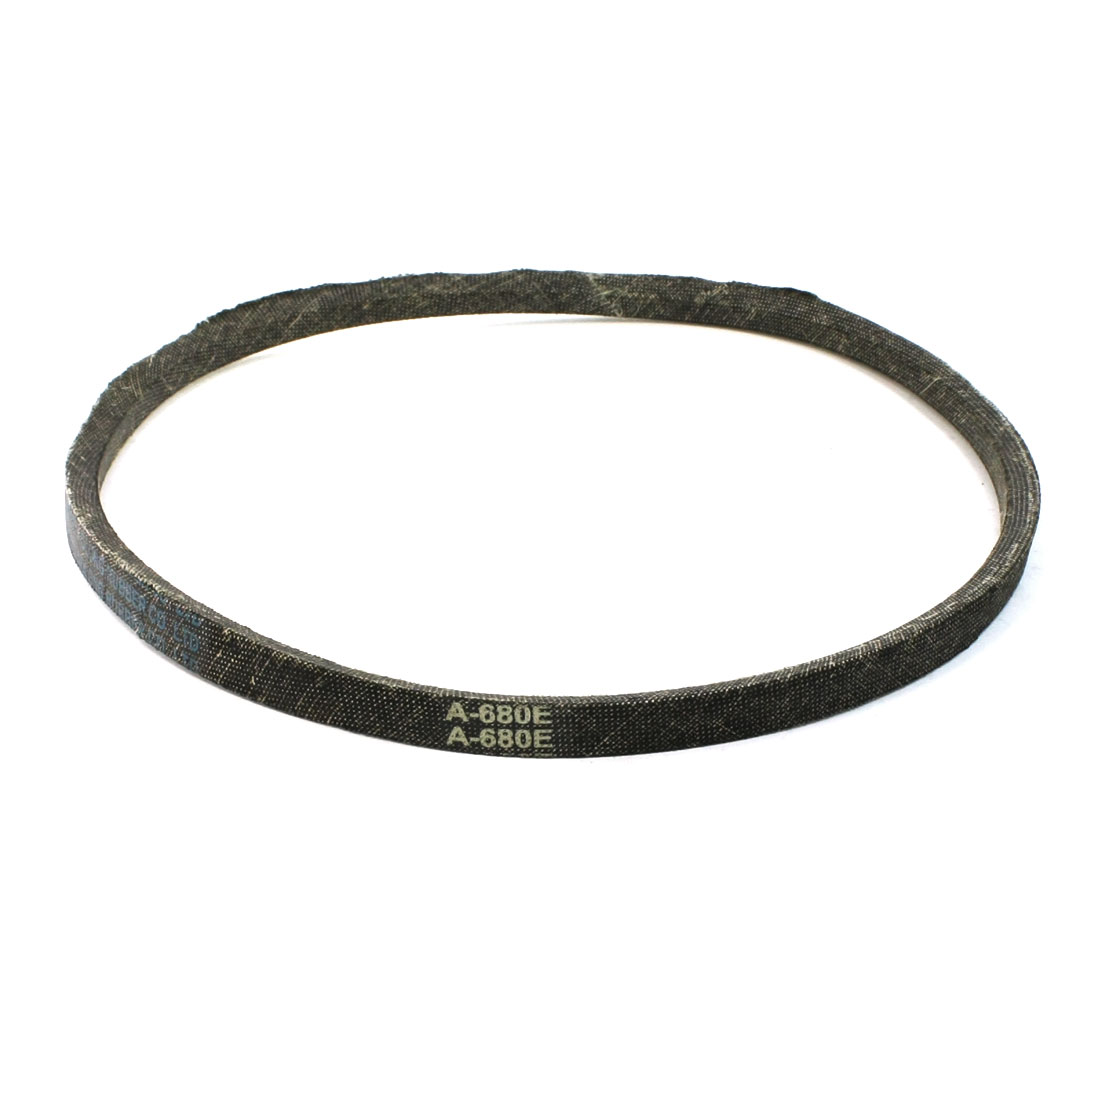 "Washing Machine Motor V Belt 13mm Outer Width 68cm 26 49/64"" Inner Girth"